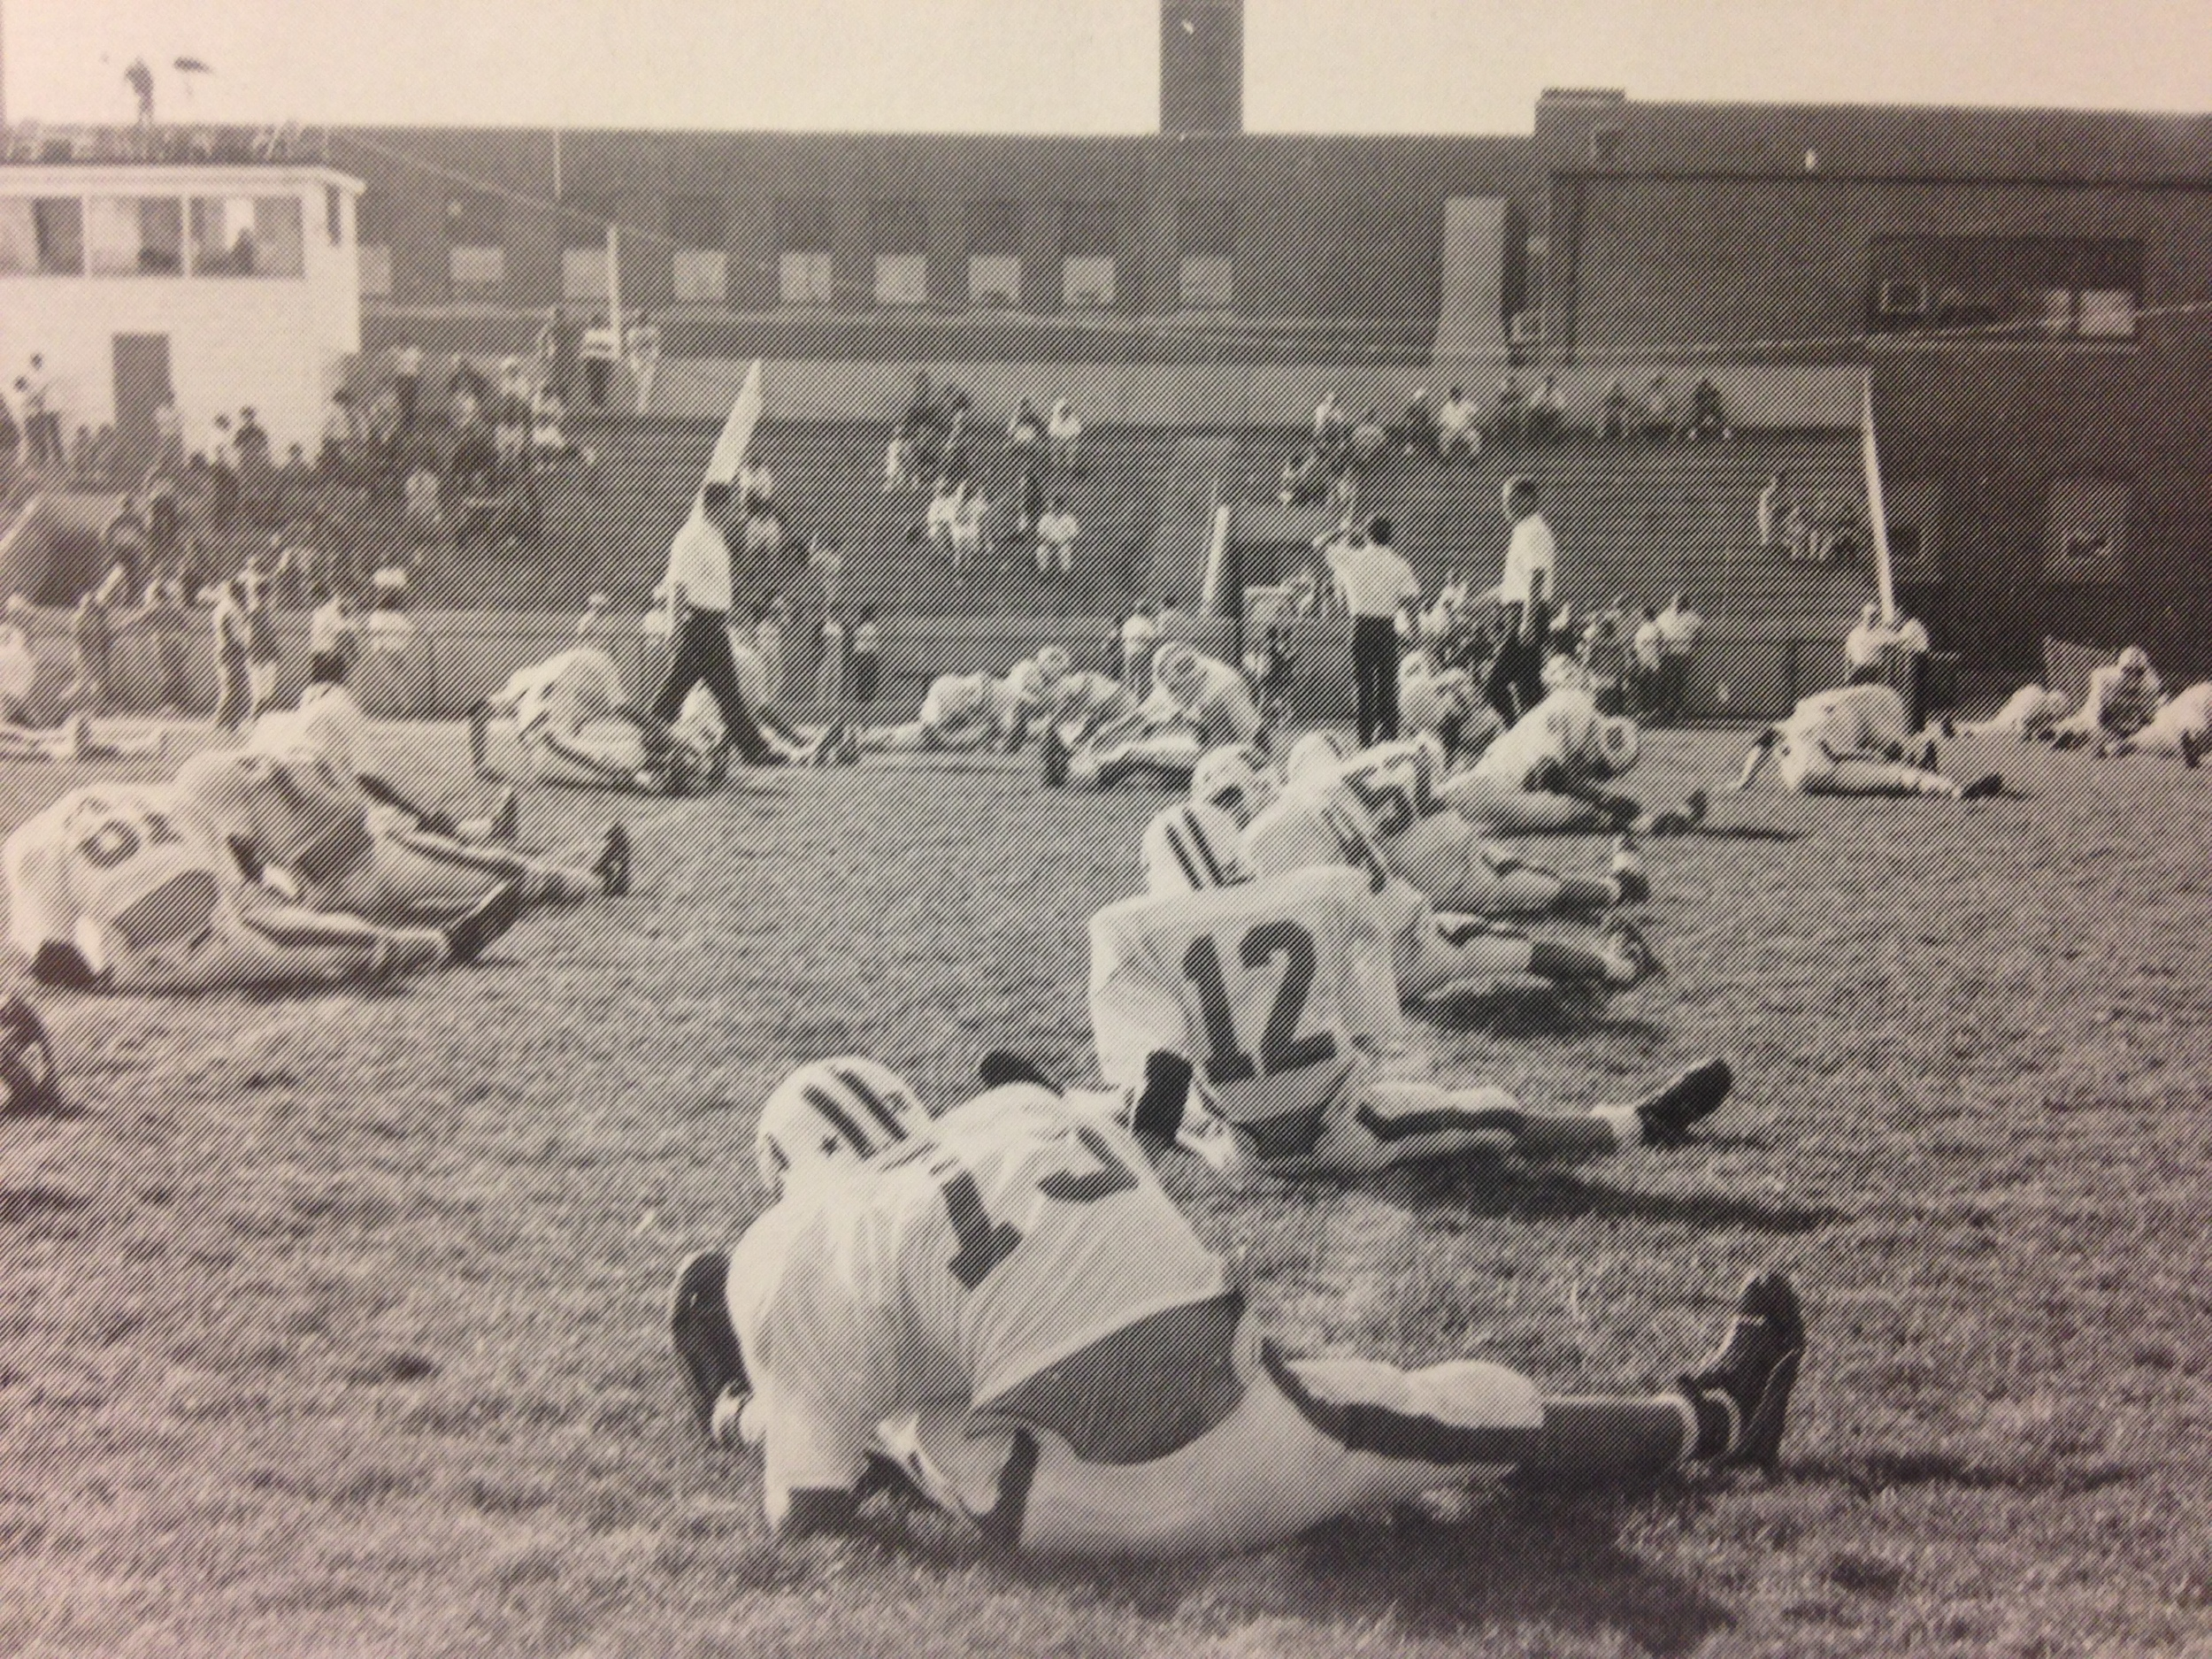 Pregame before the 1986 St. Charles contest as the Stallions were looking for their 20th straight win